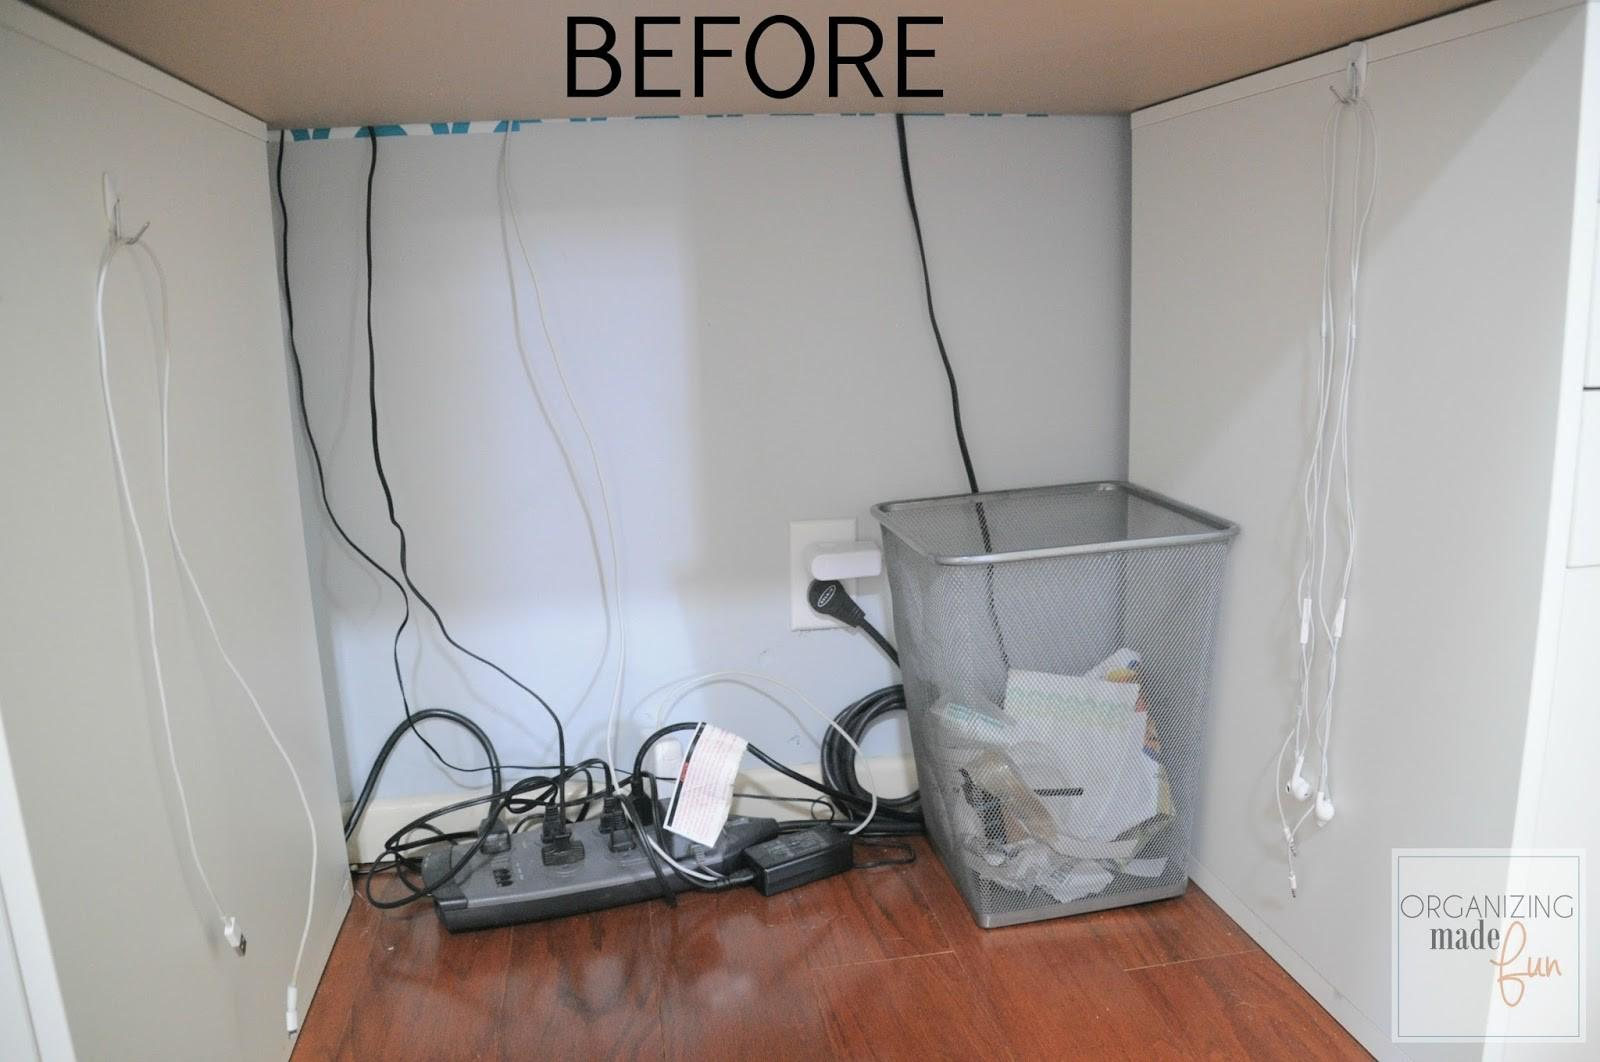 Hide Messy Cords Pegboard Organizing Made